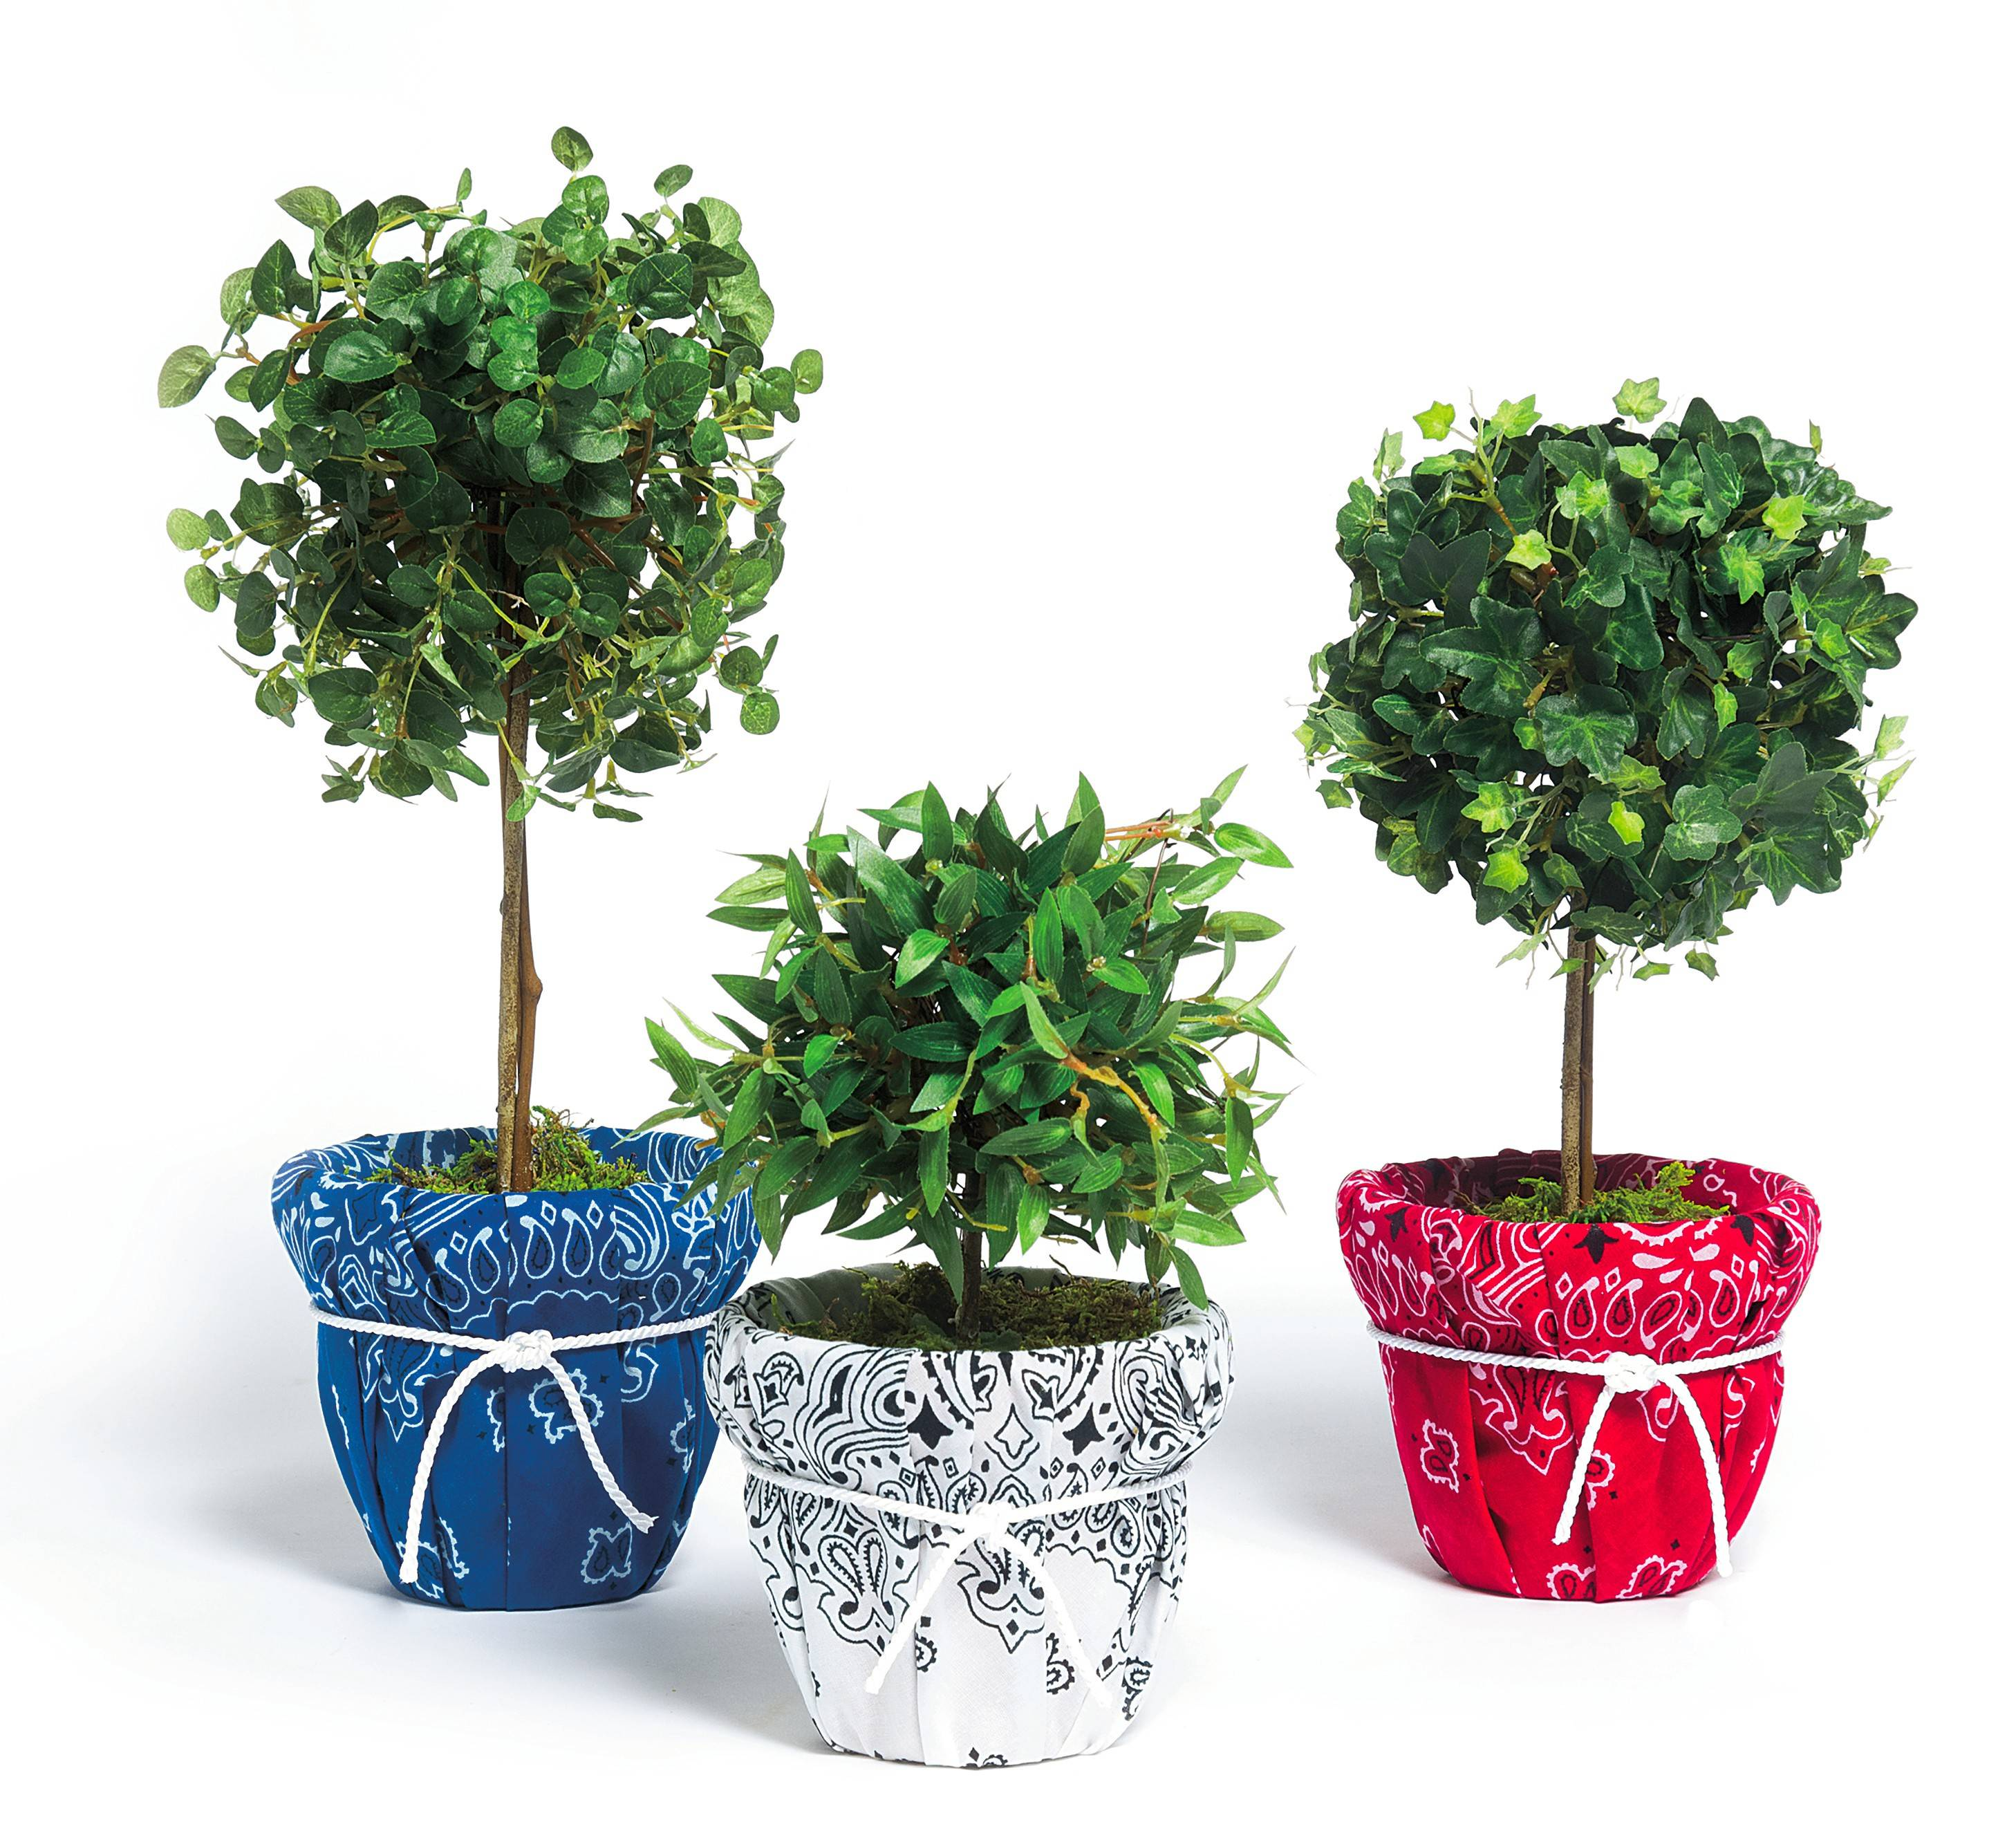 Use colorful bandannas to fashion boy-howdy bases for topiaries.